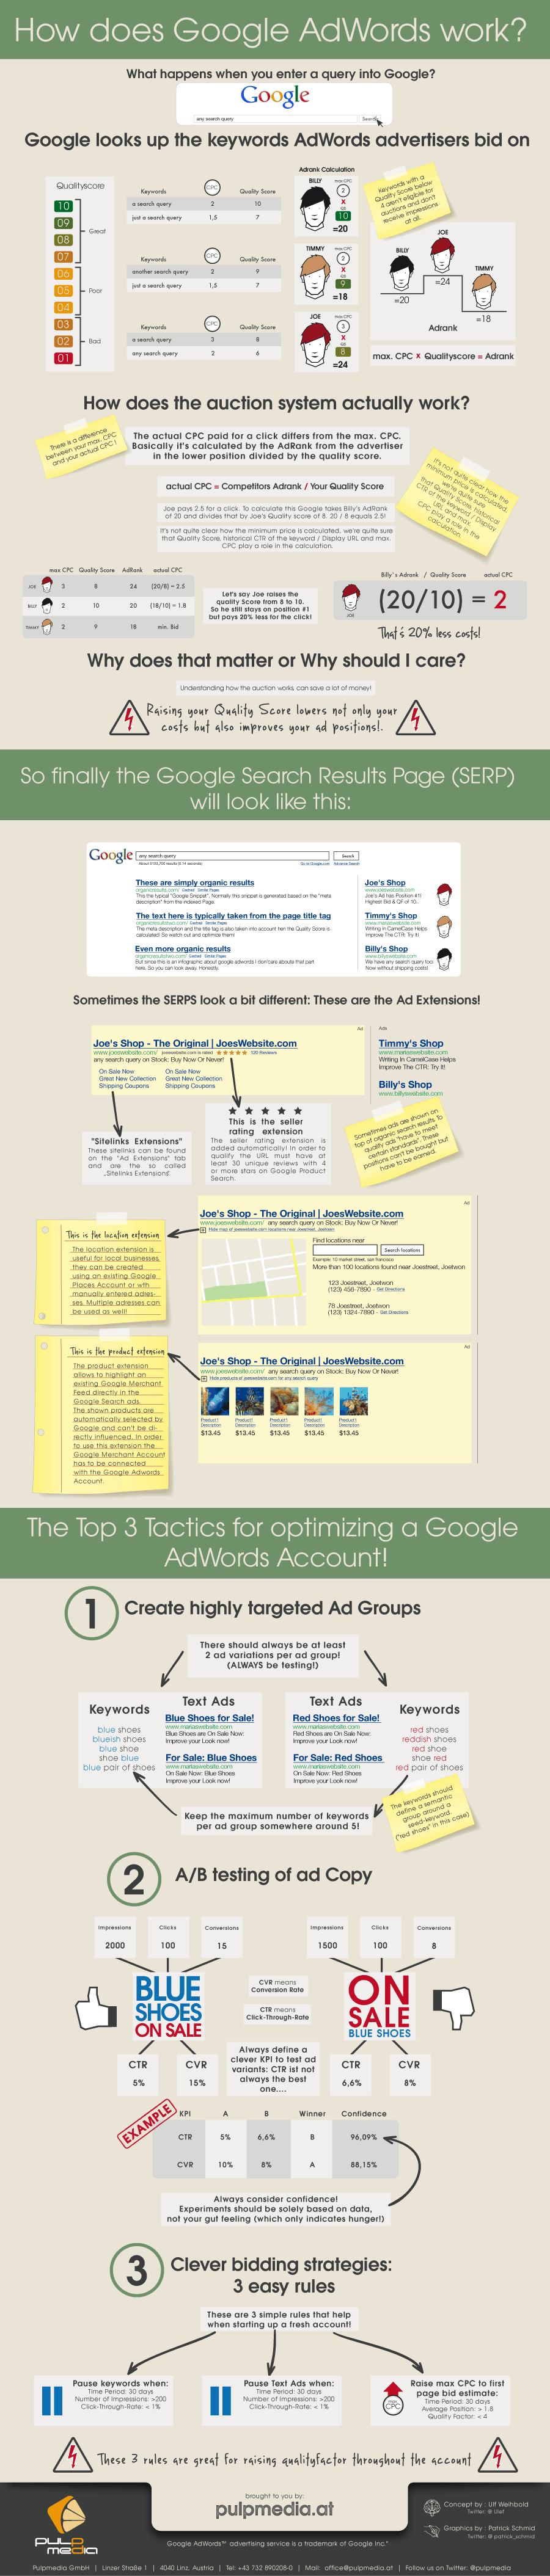 How does Google AdWords work? © pulpmedia.at